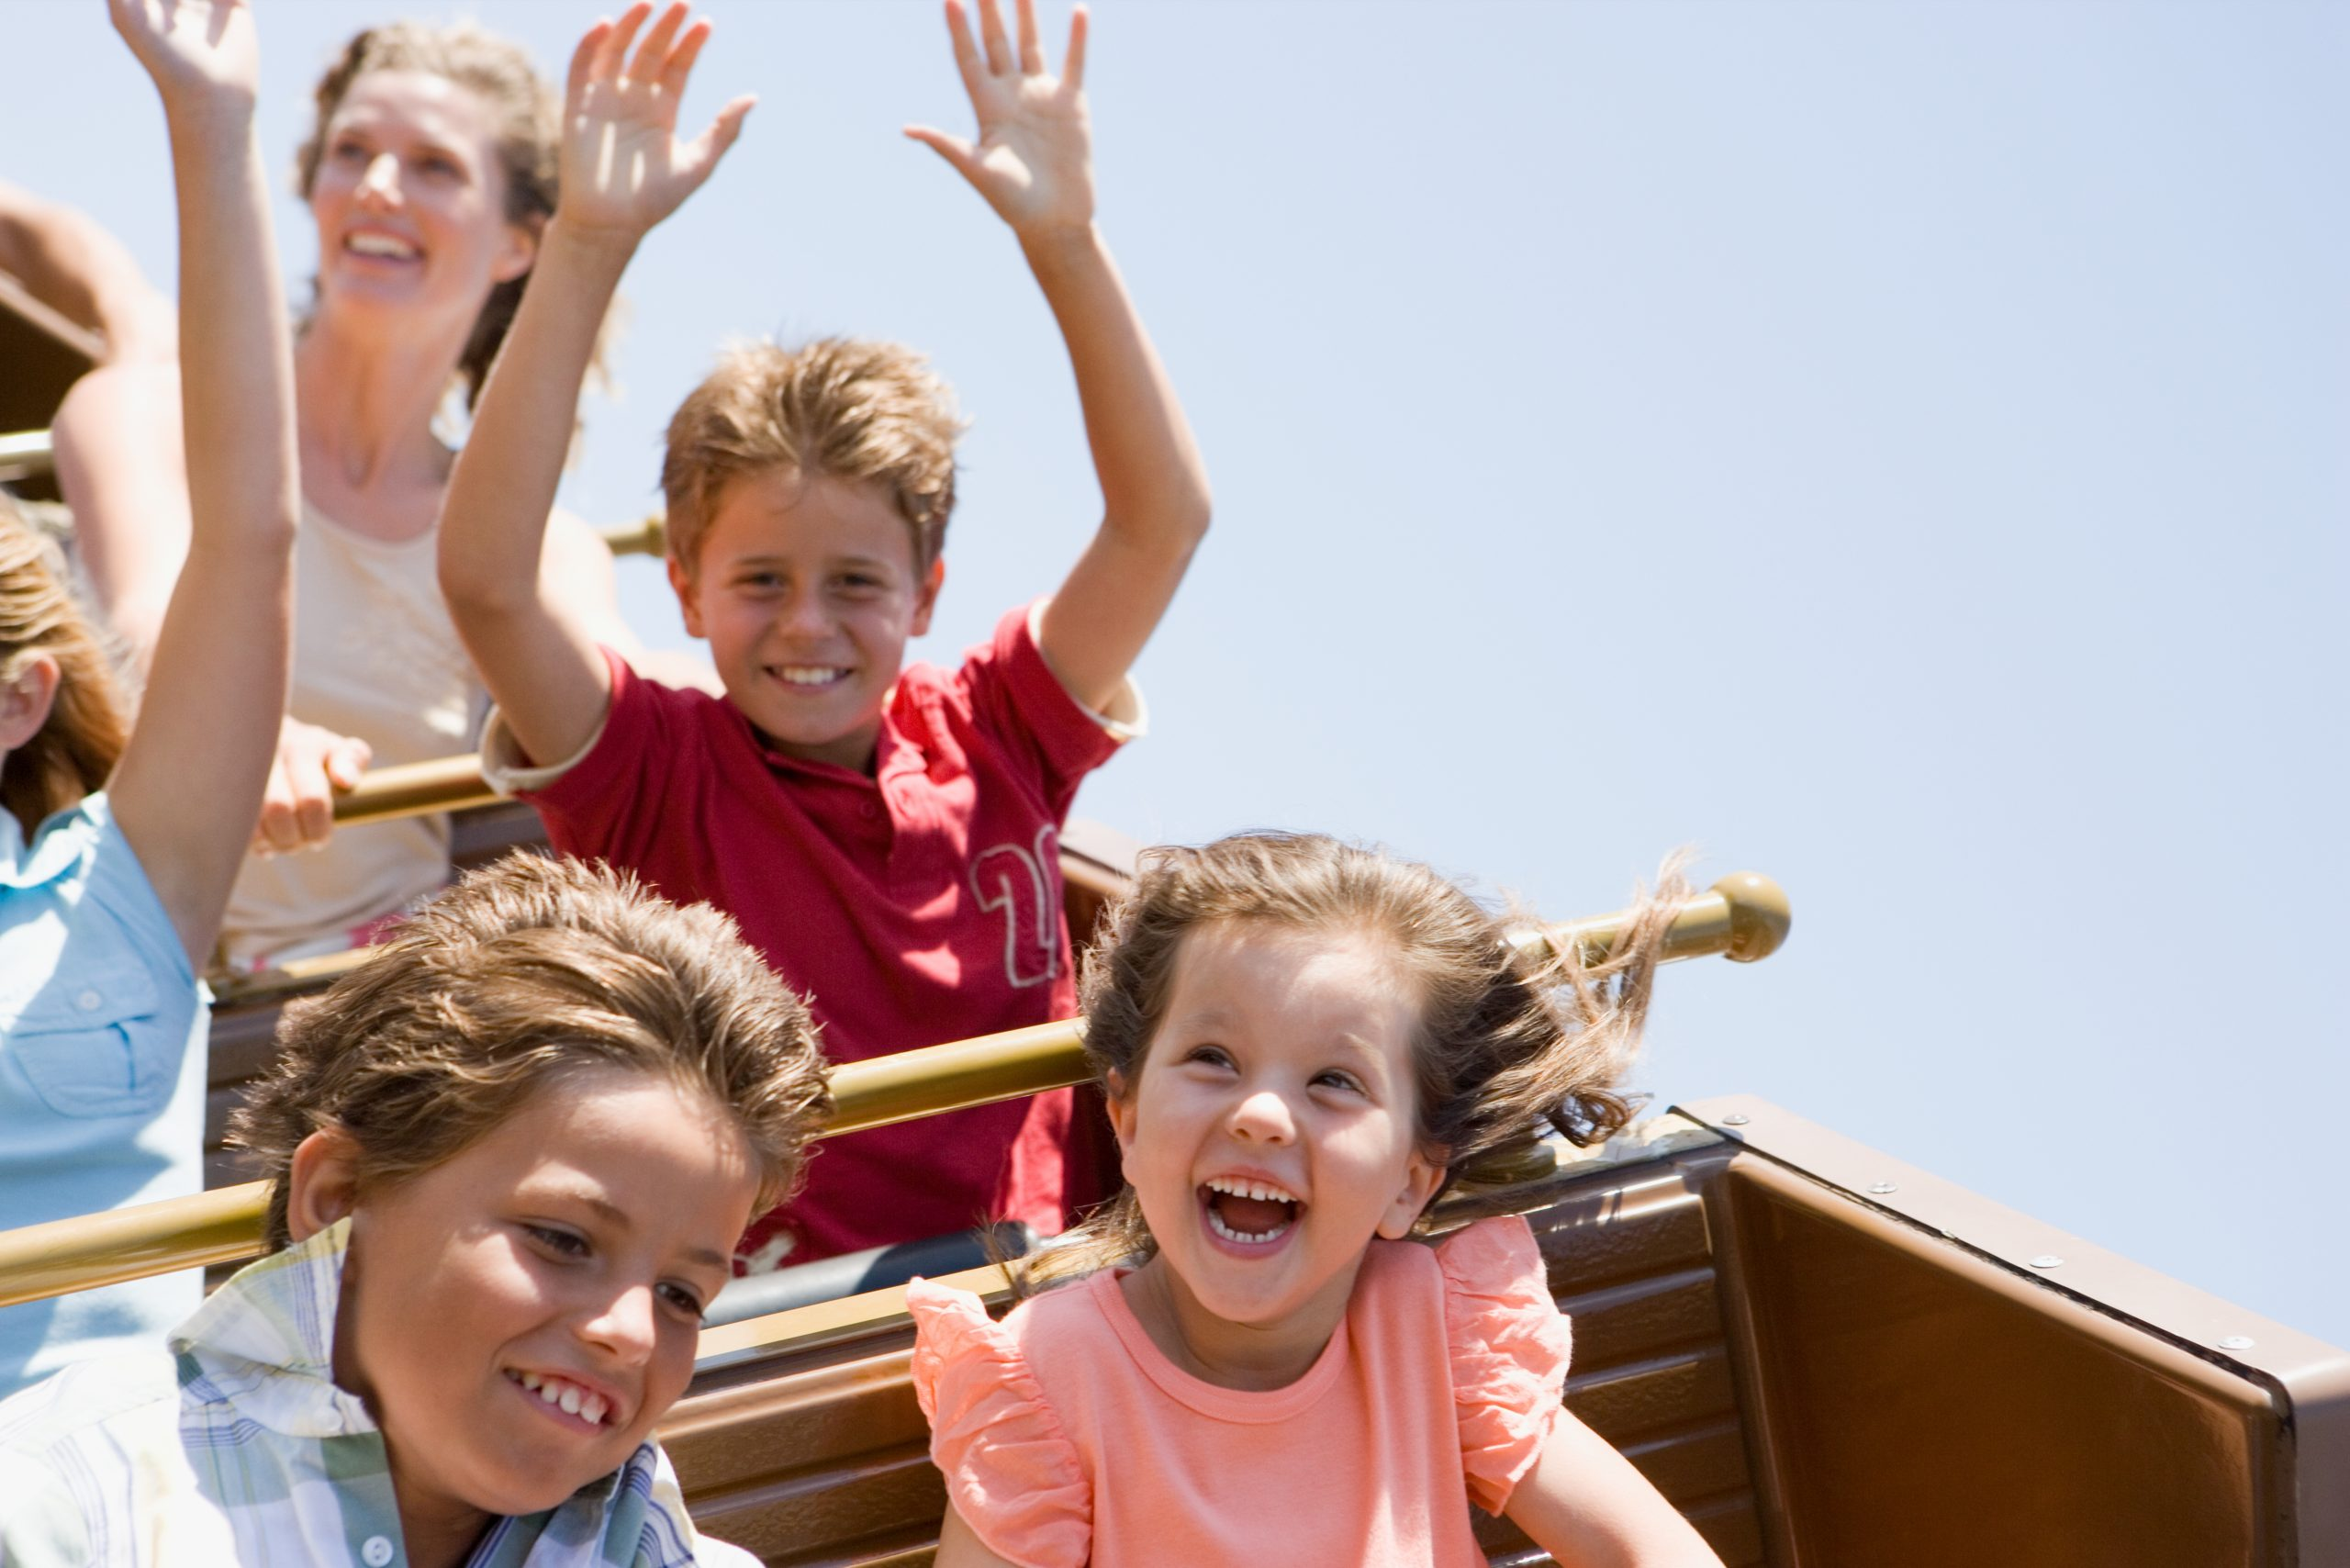 Best family days out in the UK